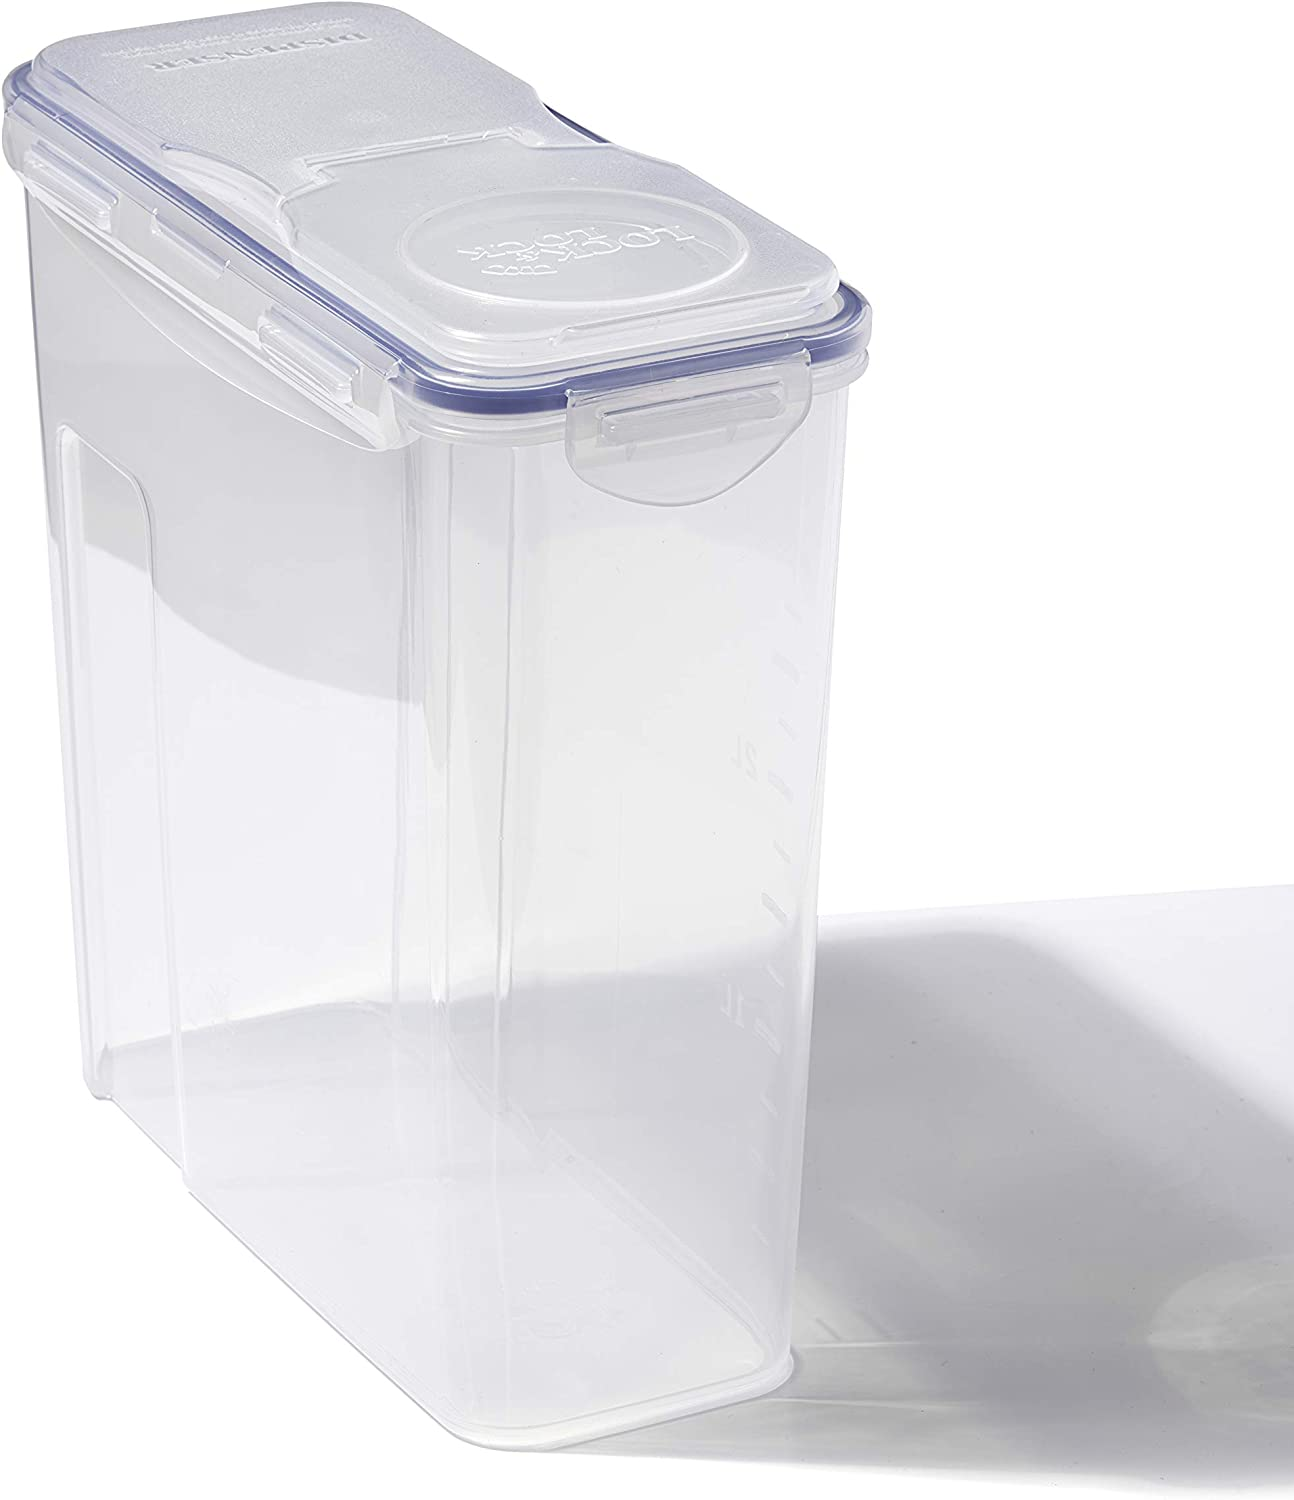 LOCK & LOCK Easy Essentials Food lids (flip-top) / Pantry Storage/Airtight containers, BPA Free, top-16.5 Cup-for Cereal, Clear